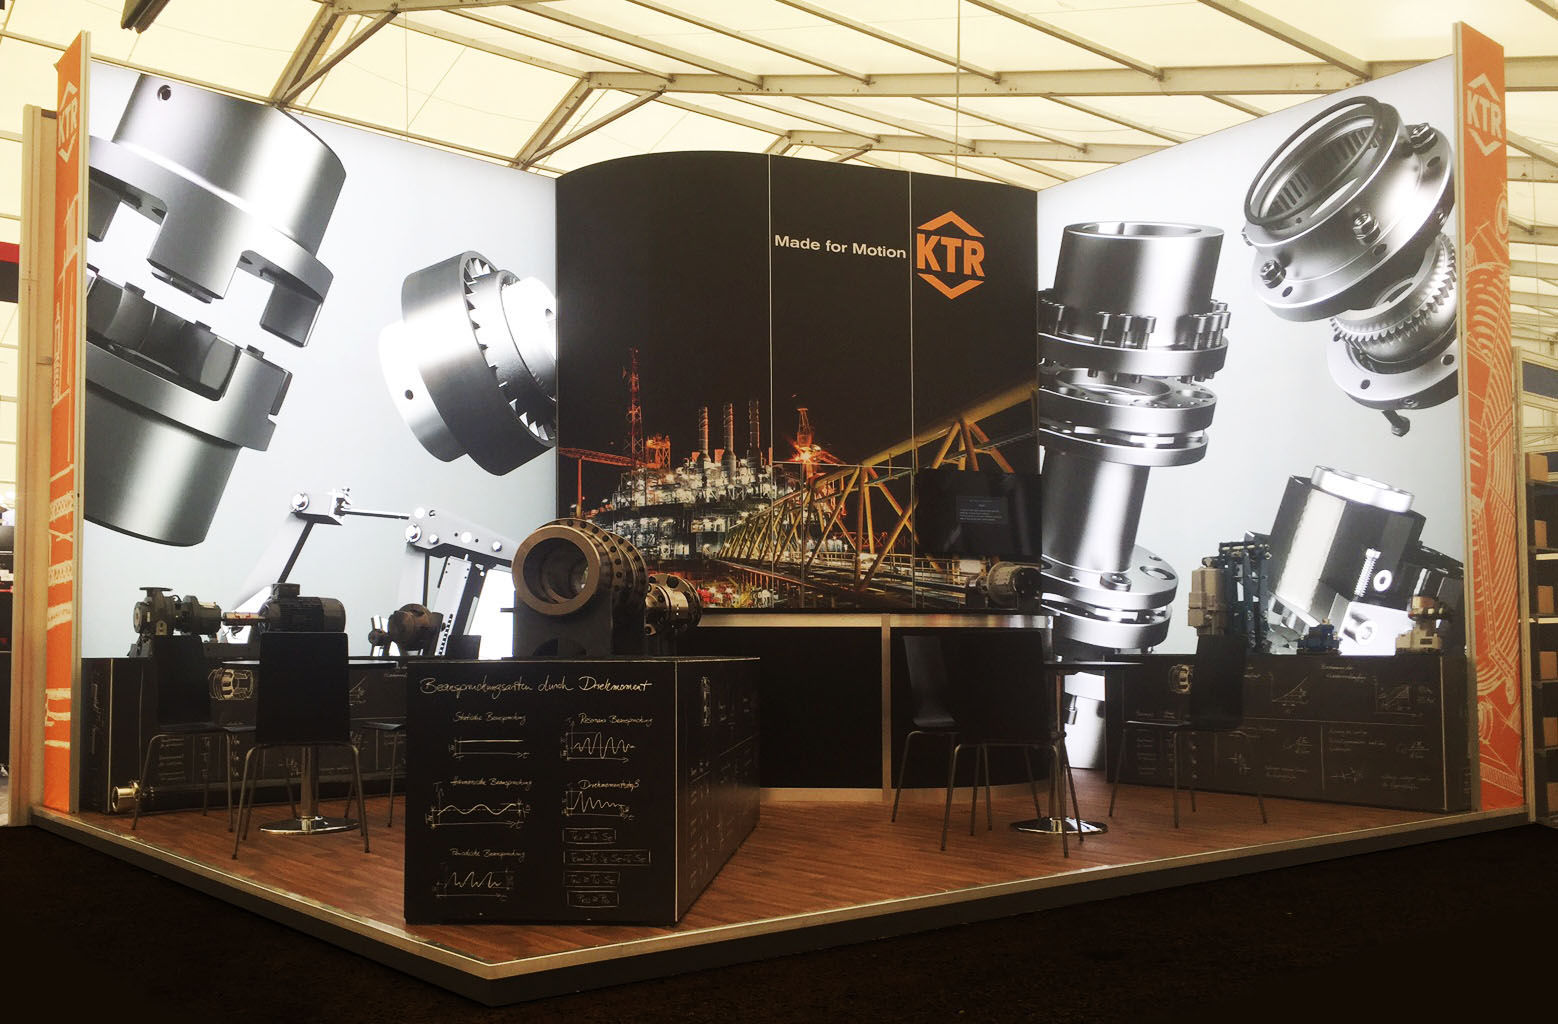 Envisage Exhibition Stand Design And Build Uk : Uk construction week 2017 exhibition stands and event structures